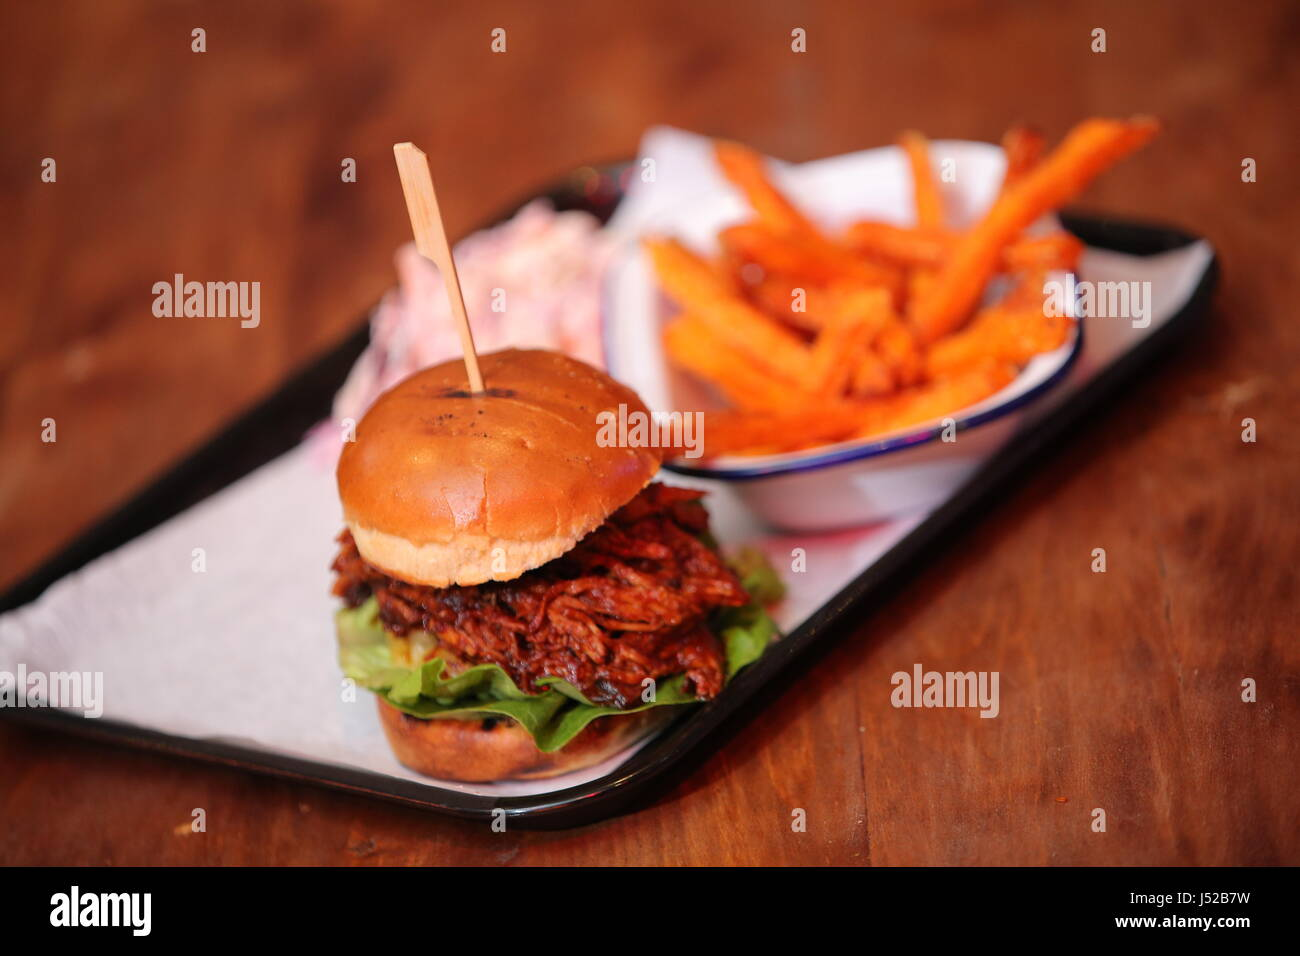 A pulled pork burger. - Stock Image